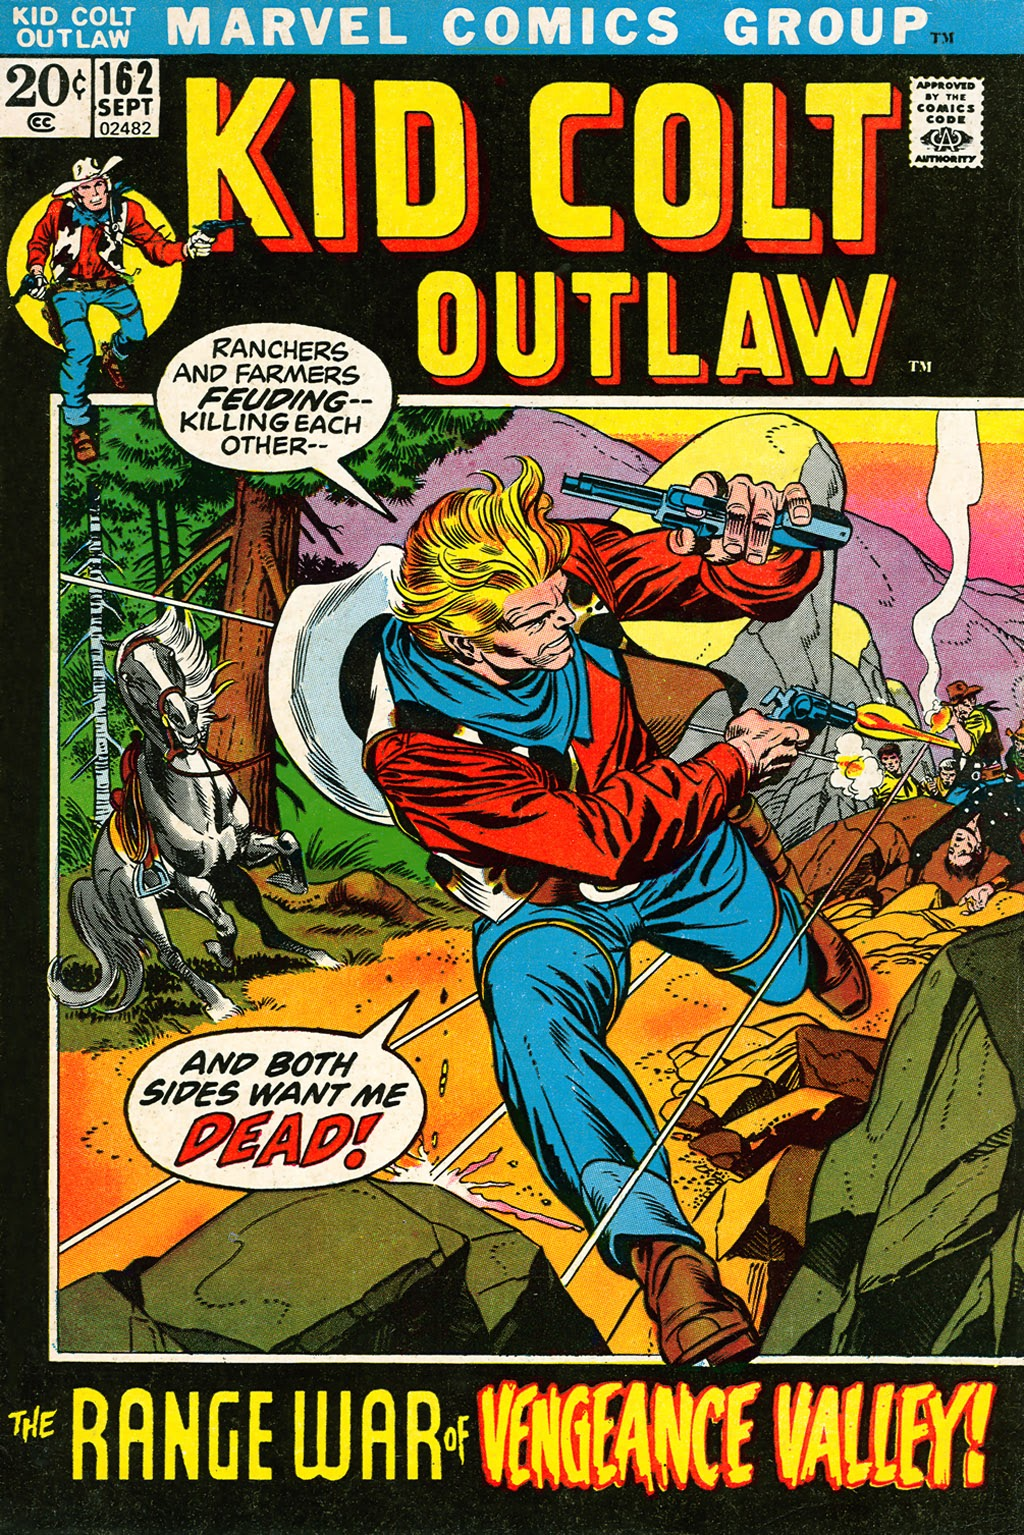 Kid Colt Outlaw issue 162 - Page 1